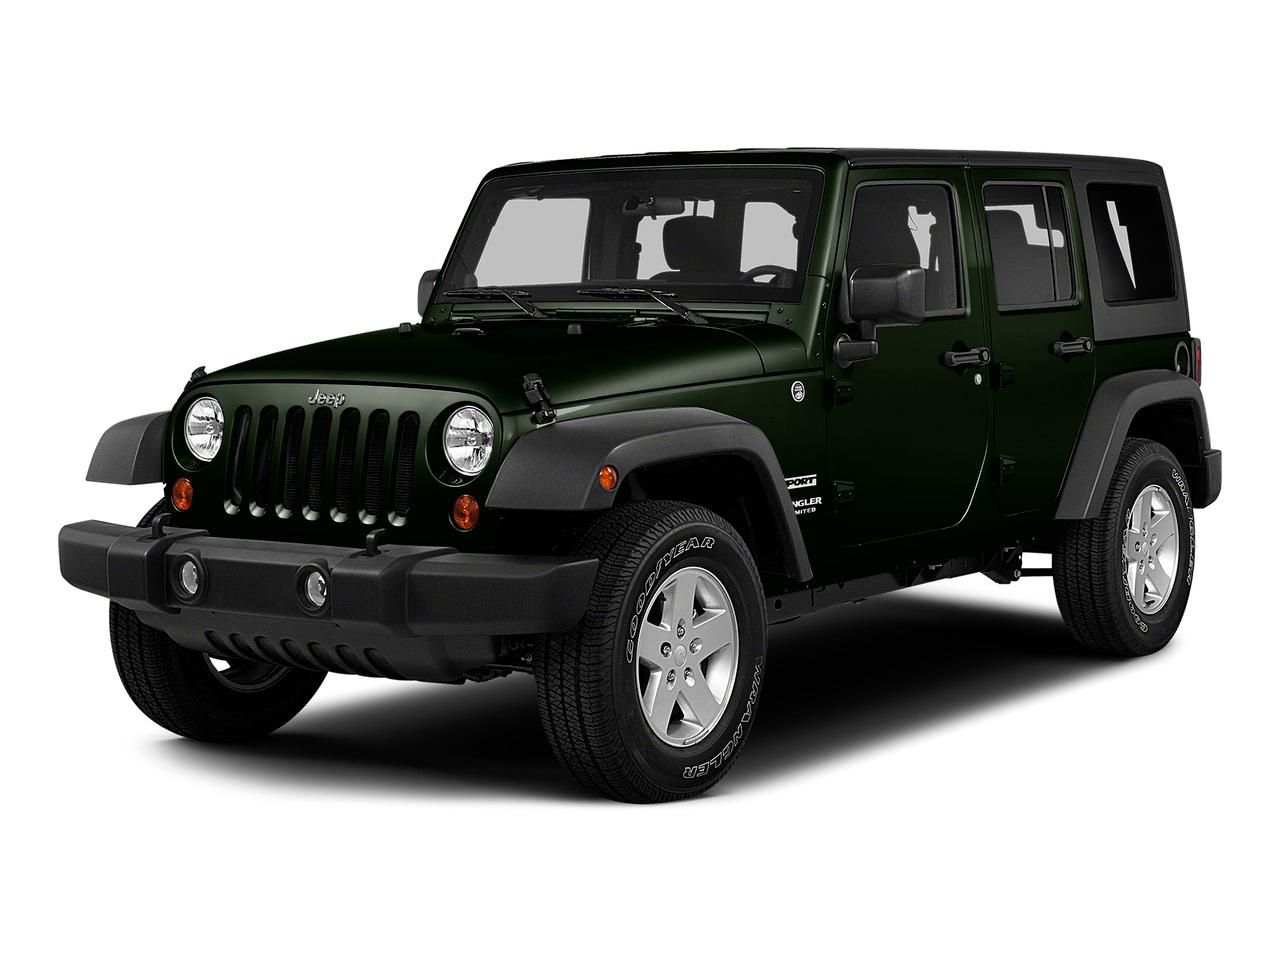 2015 Jeep Wrangler Unlimited Vehicle Photo in West Chester, PA 19382